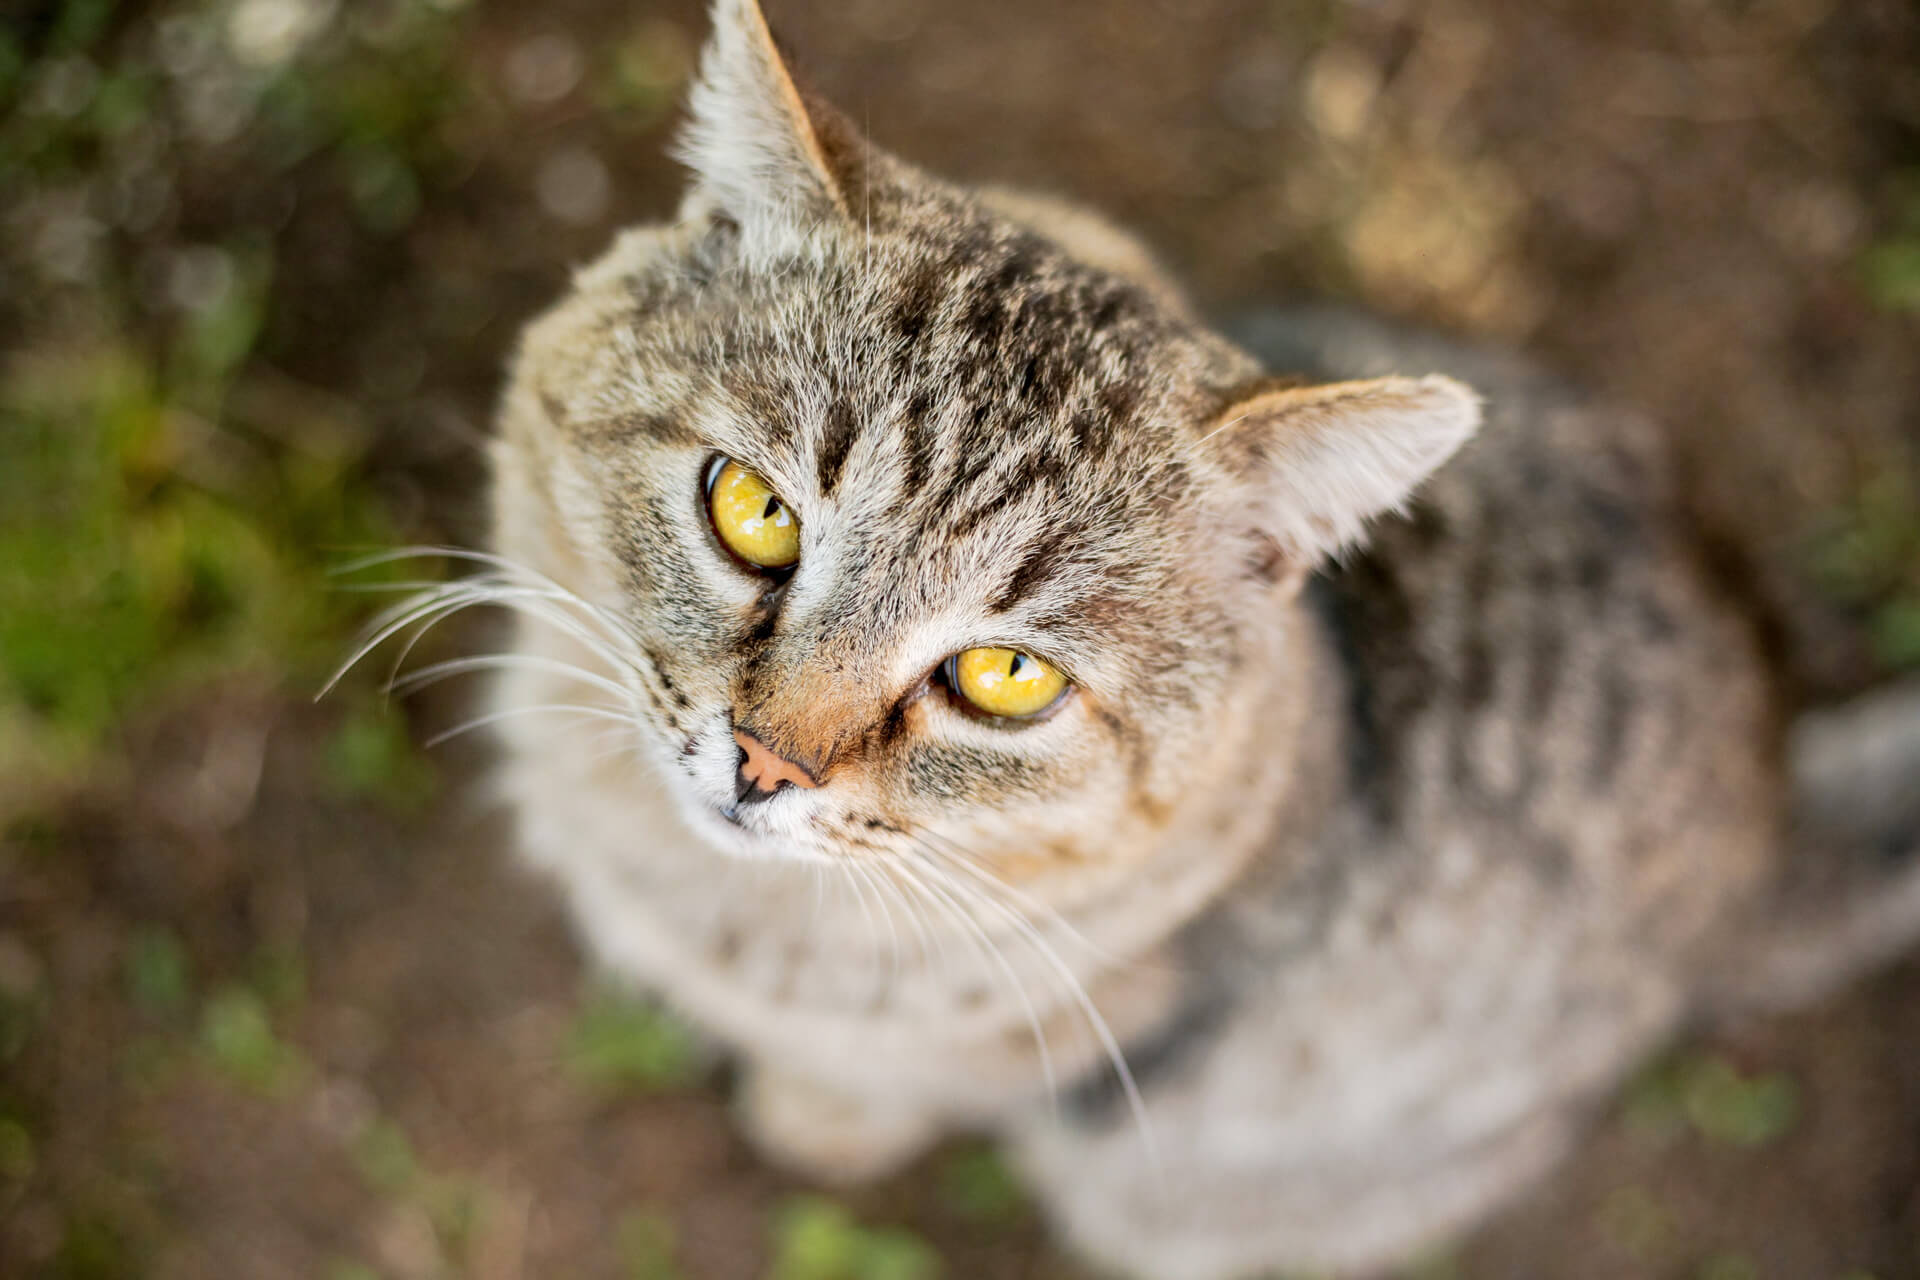 Cat dementia – signs, treatment & outlook